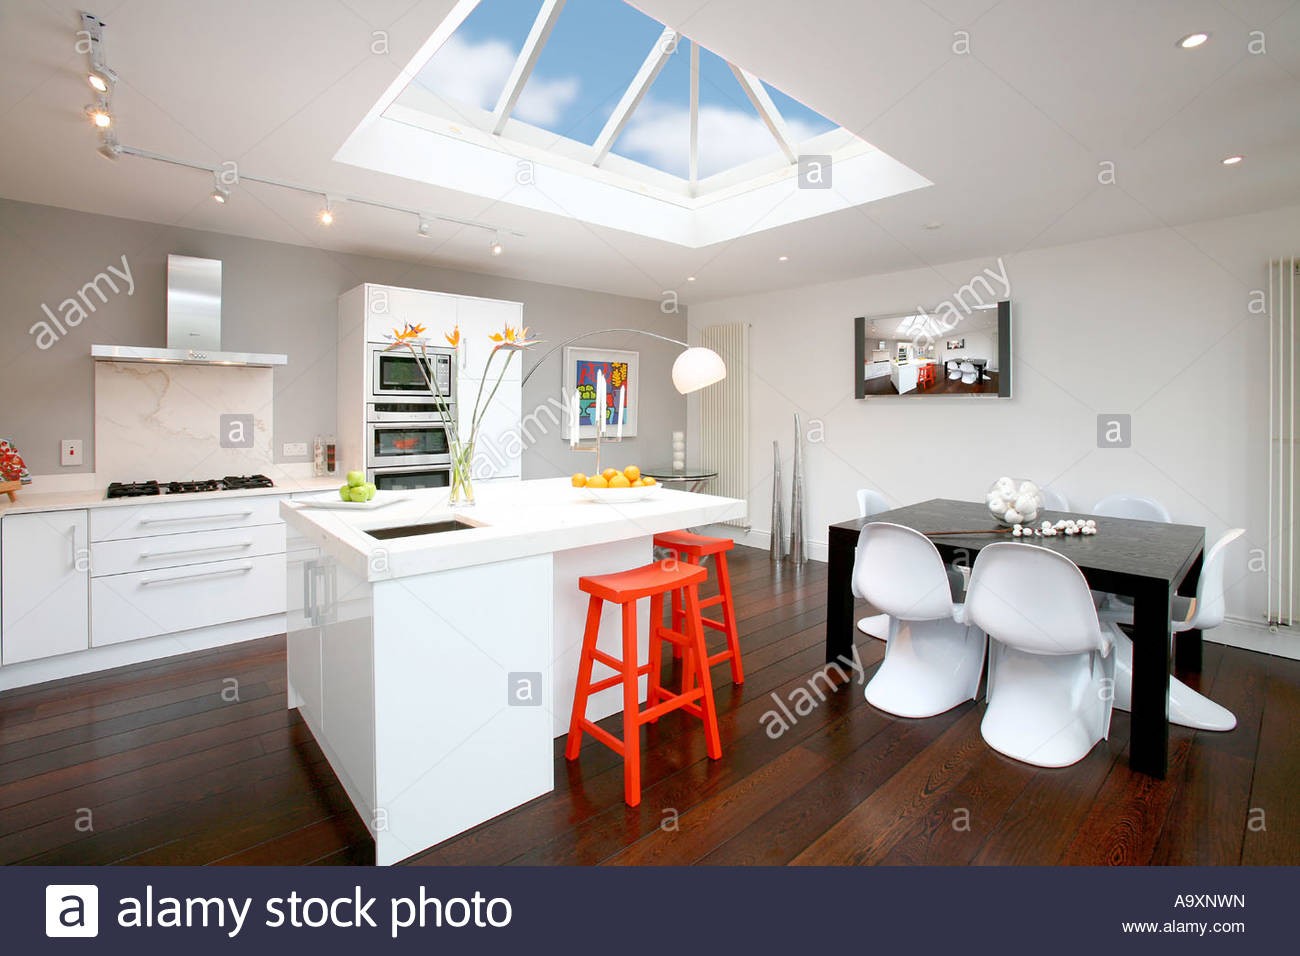 Modern Kitchen With Atrium Skylight Window Stock Photo Royalty .